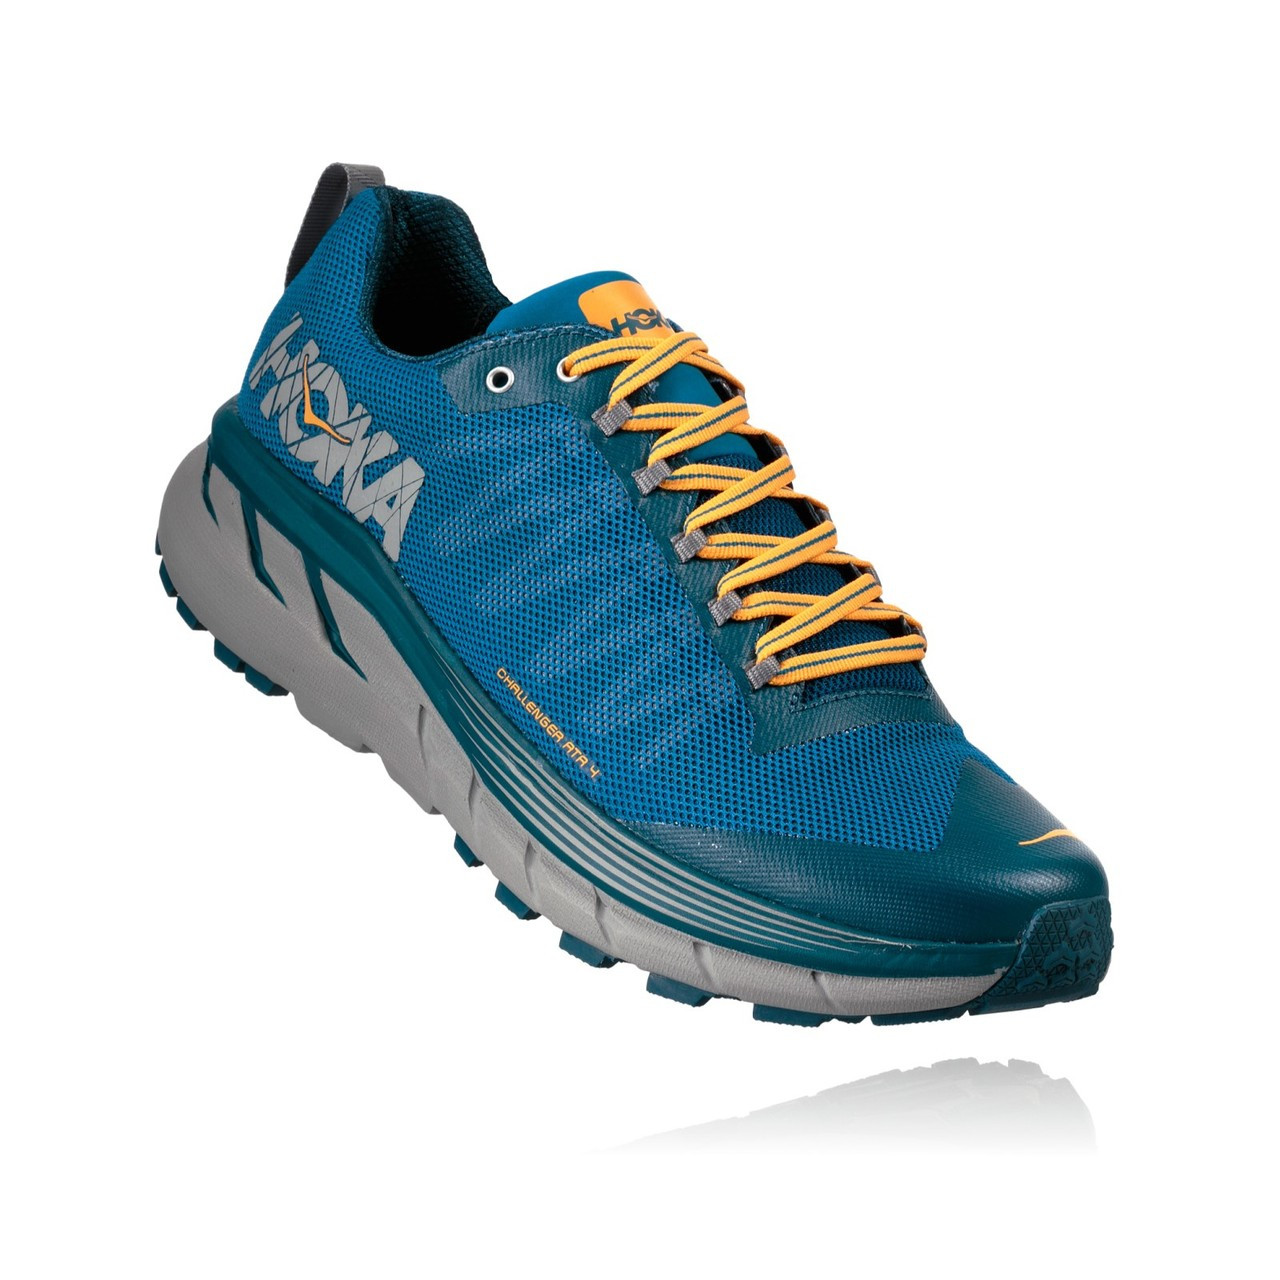 Hoka One One Men's Challenger ATR 4 Shoe - 2018 price